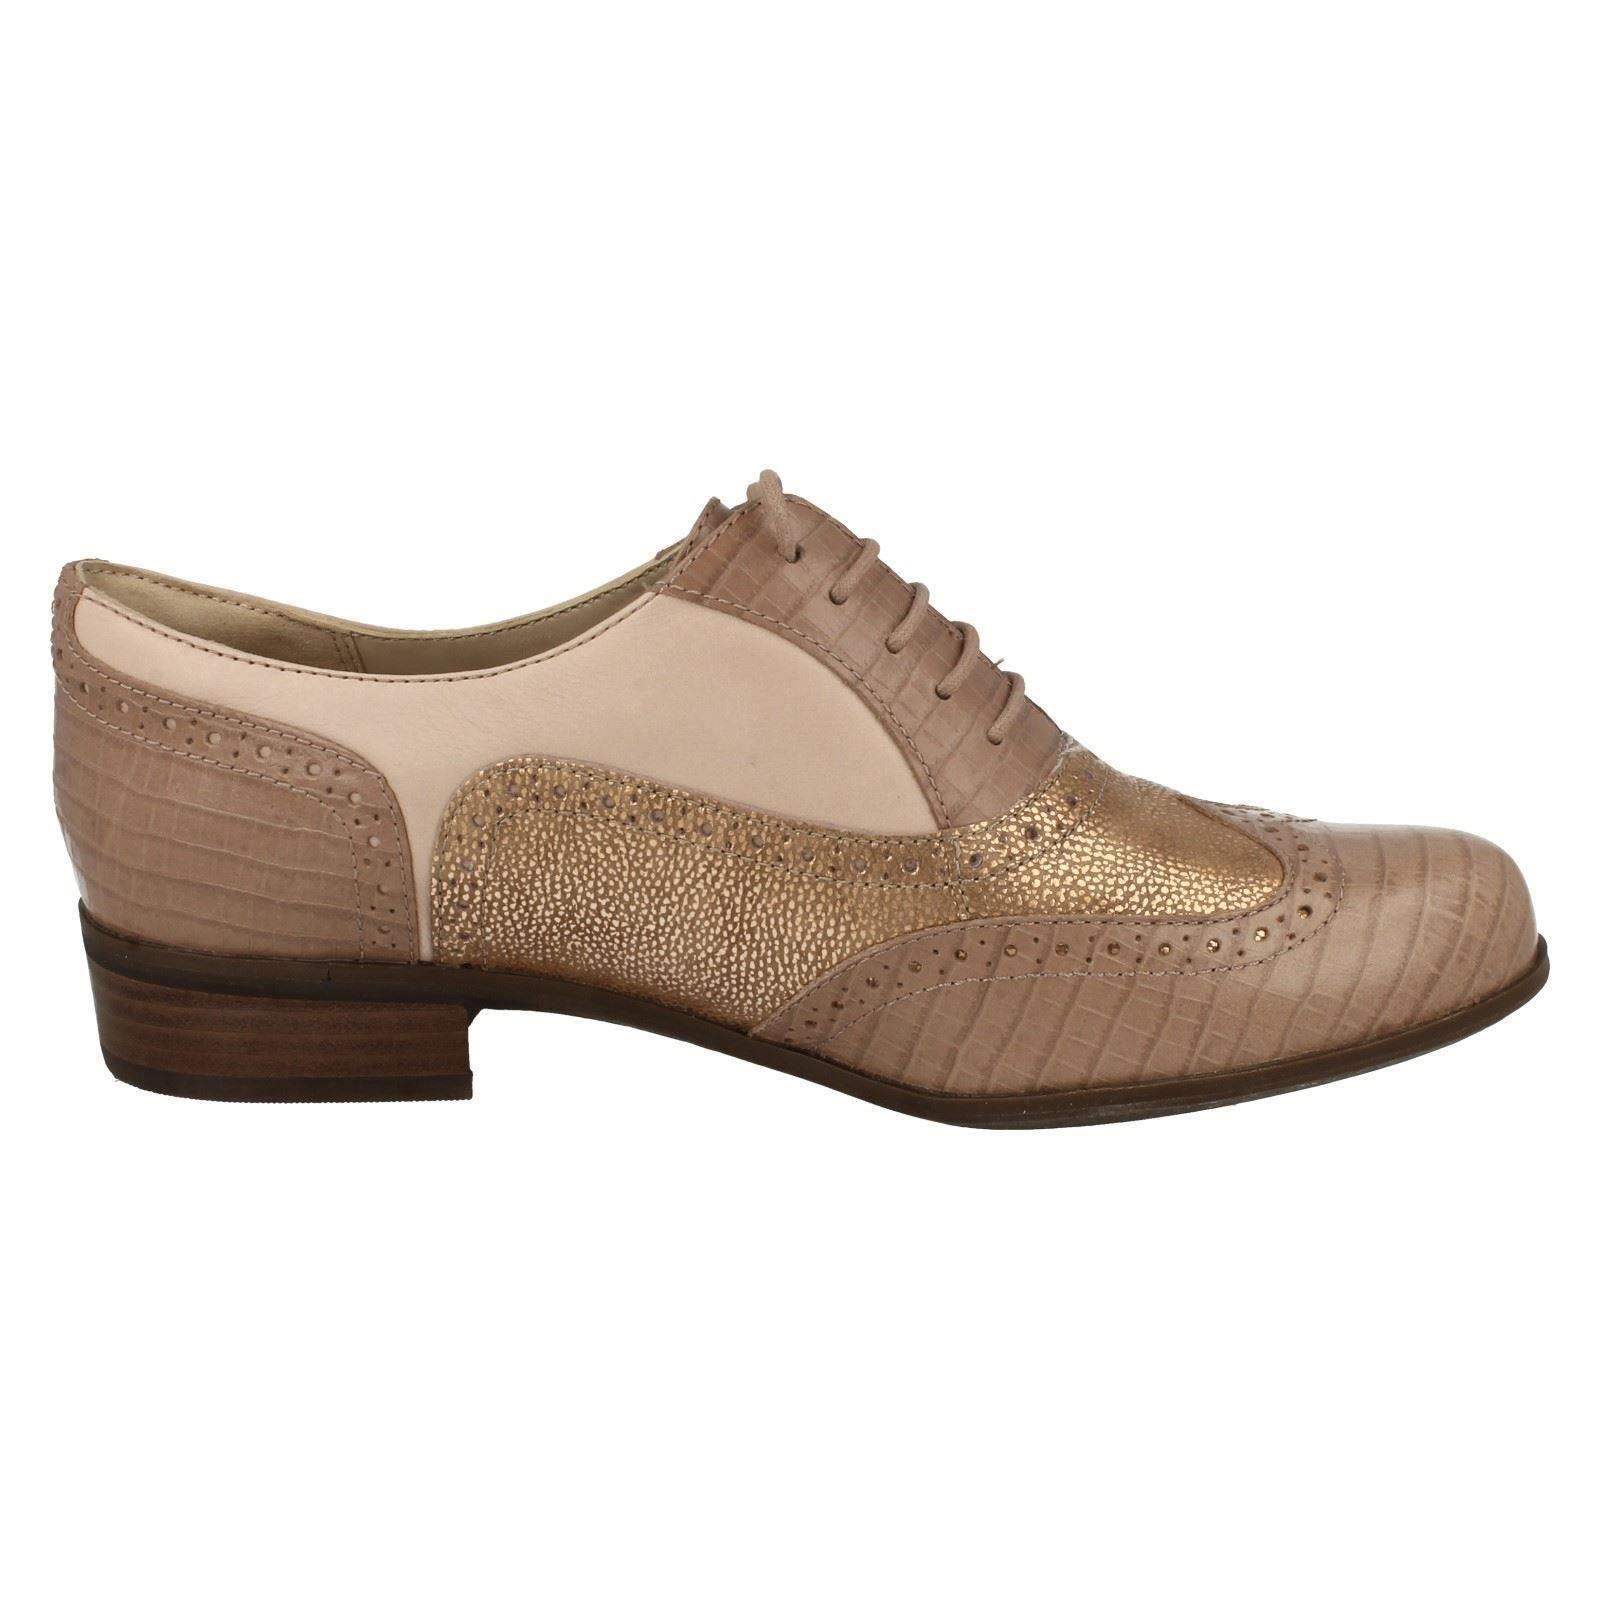 Clarks Shoes Width Fittings